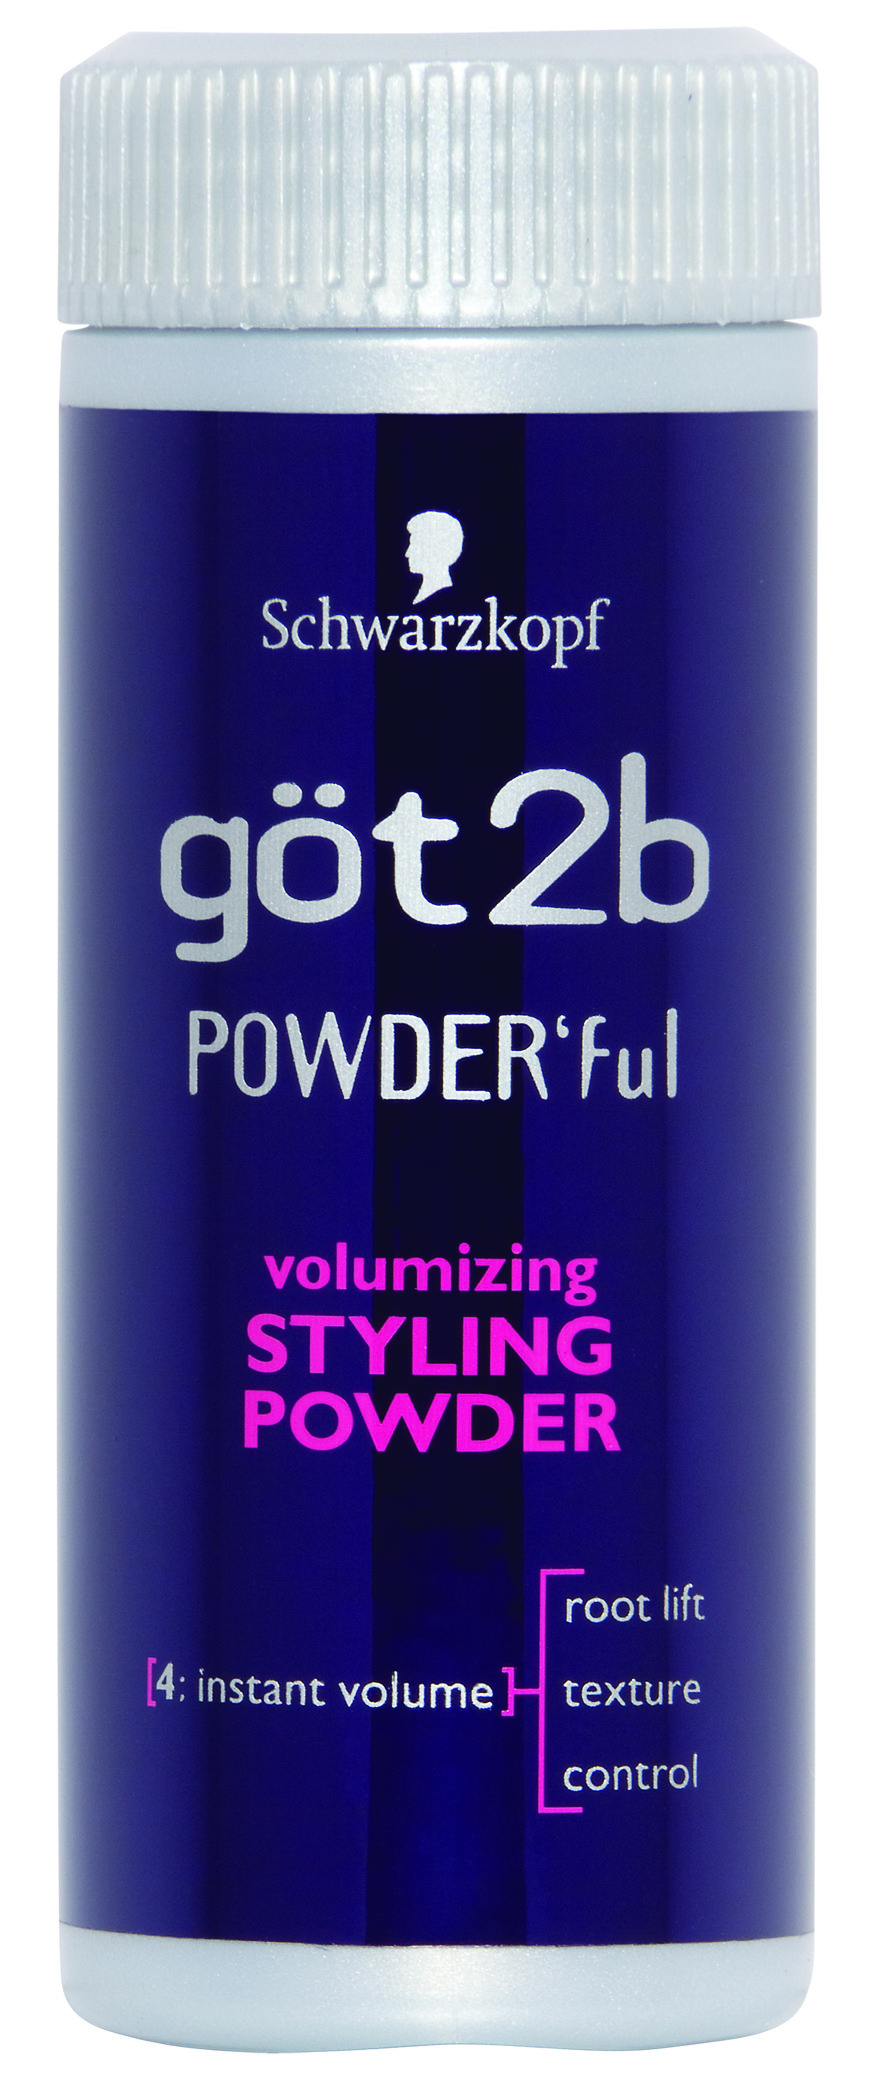 933ffbeca2 got2be Powder'ful volumizing powder. Put about a dime sized amount in the  palm of my hand, rub my hands together, rub my hands through my hair. Poof.